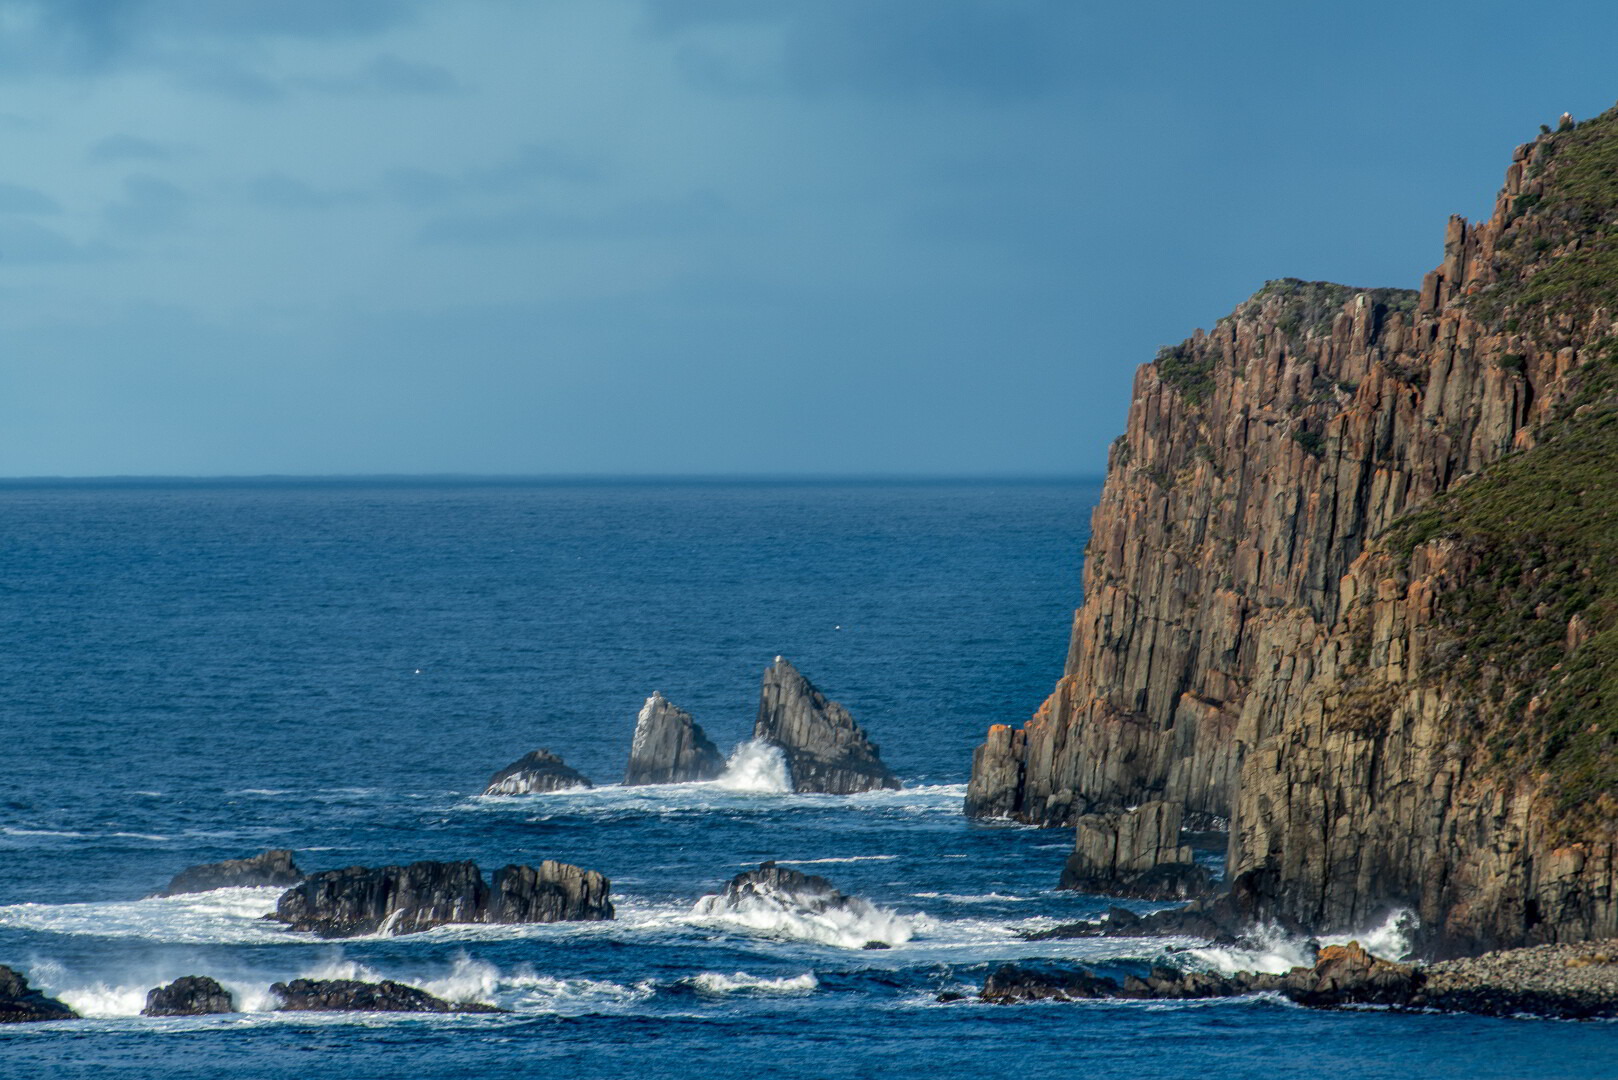 Dolerite cliffs at Cape Bruny